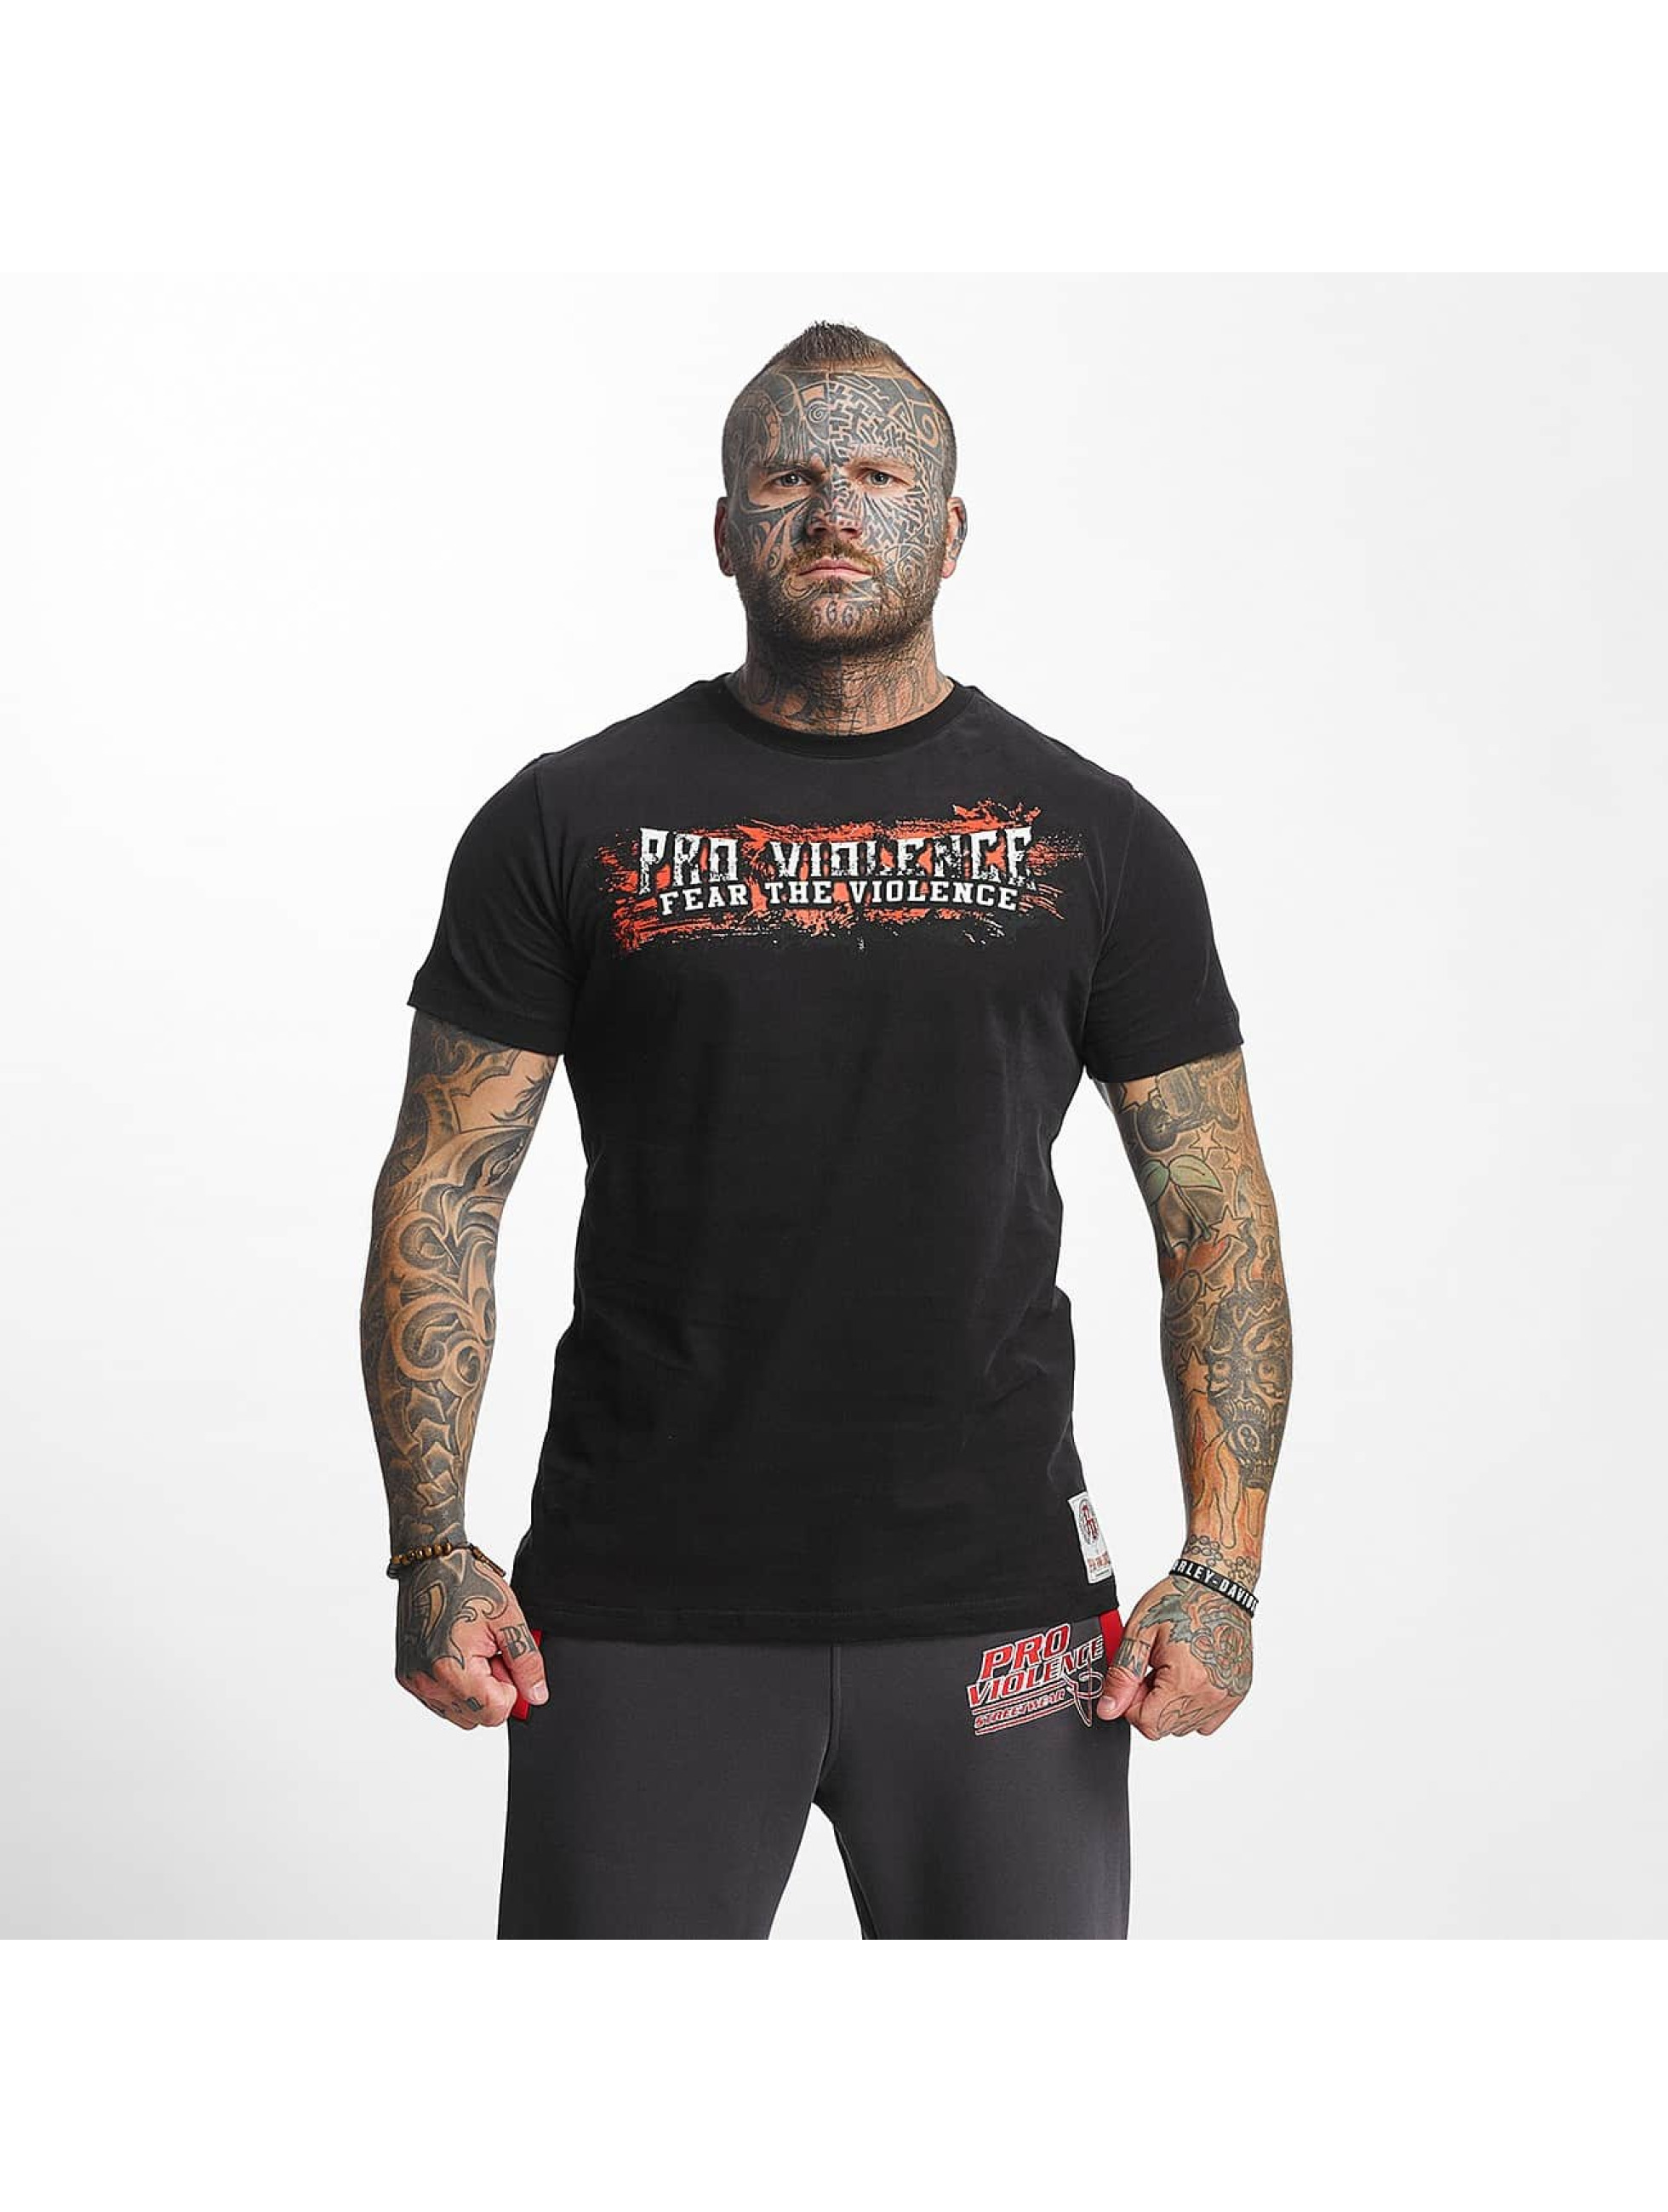 Pro Violence Streetwear T-Shirt The Violence Fear black